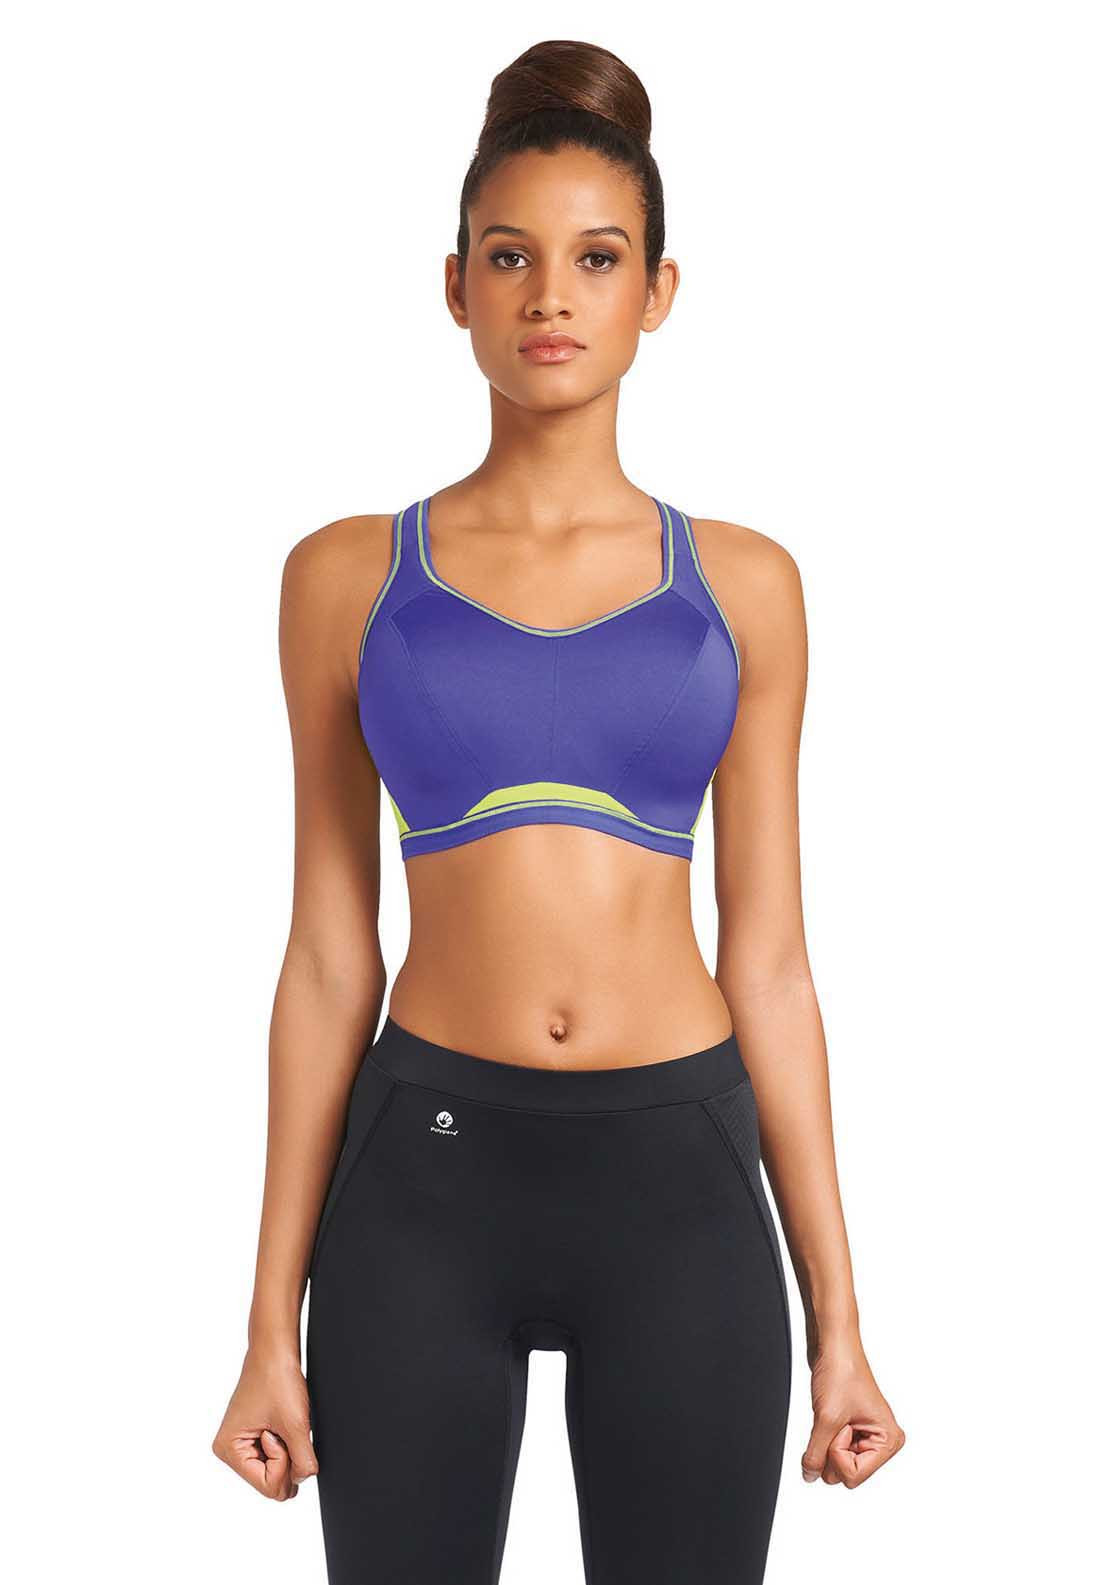 Freya Active Underwired Crop Top Sports Bra, Indigo